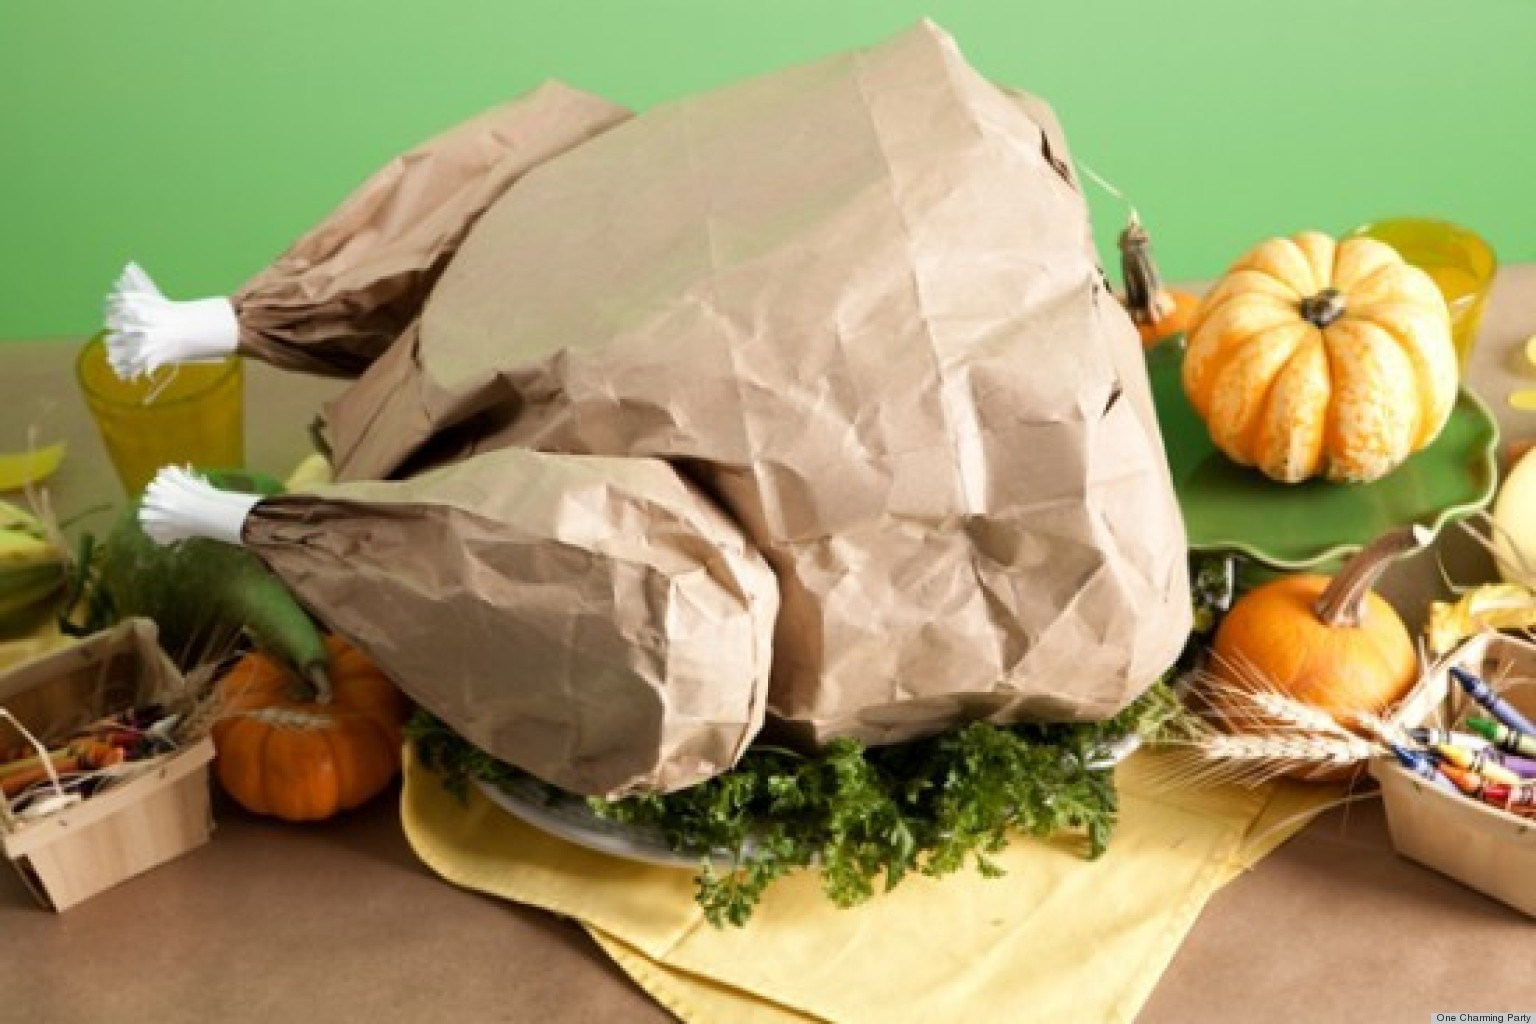 Thanksgiving crafts create a paper bag turkey filled with